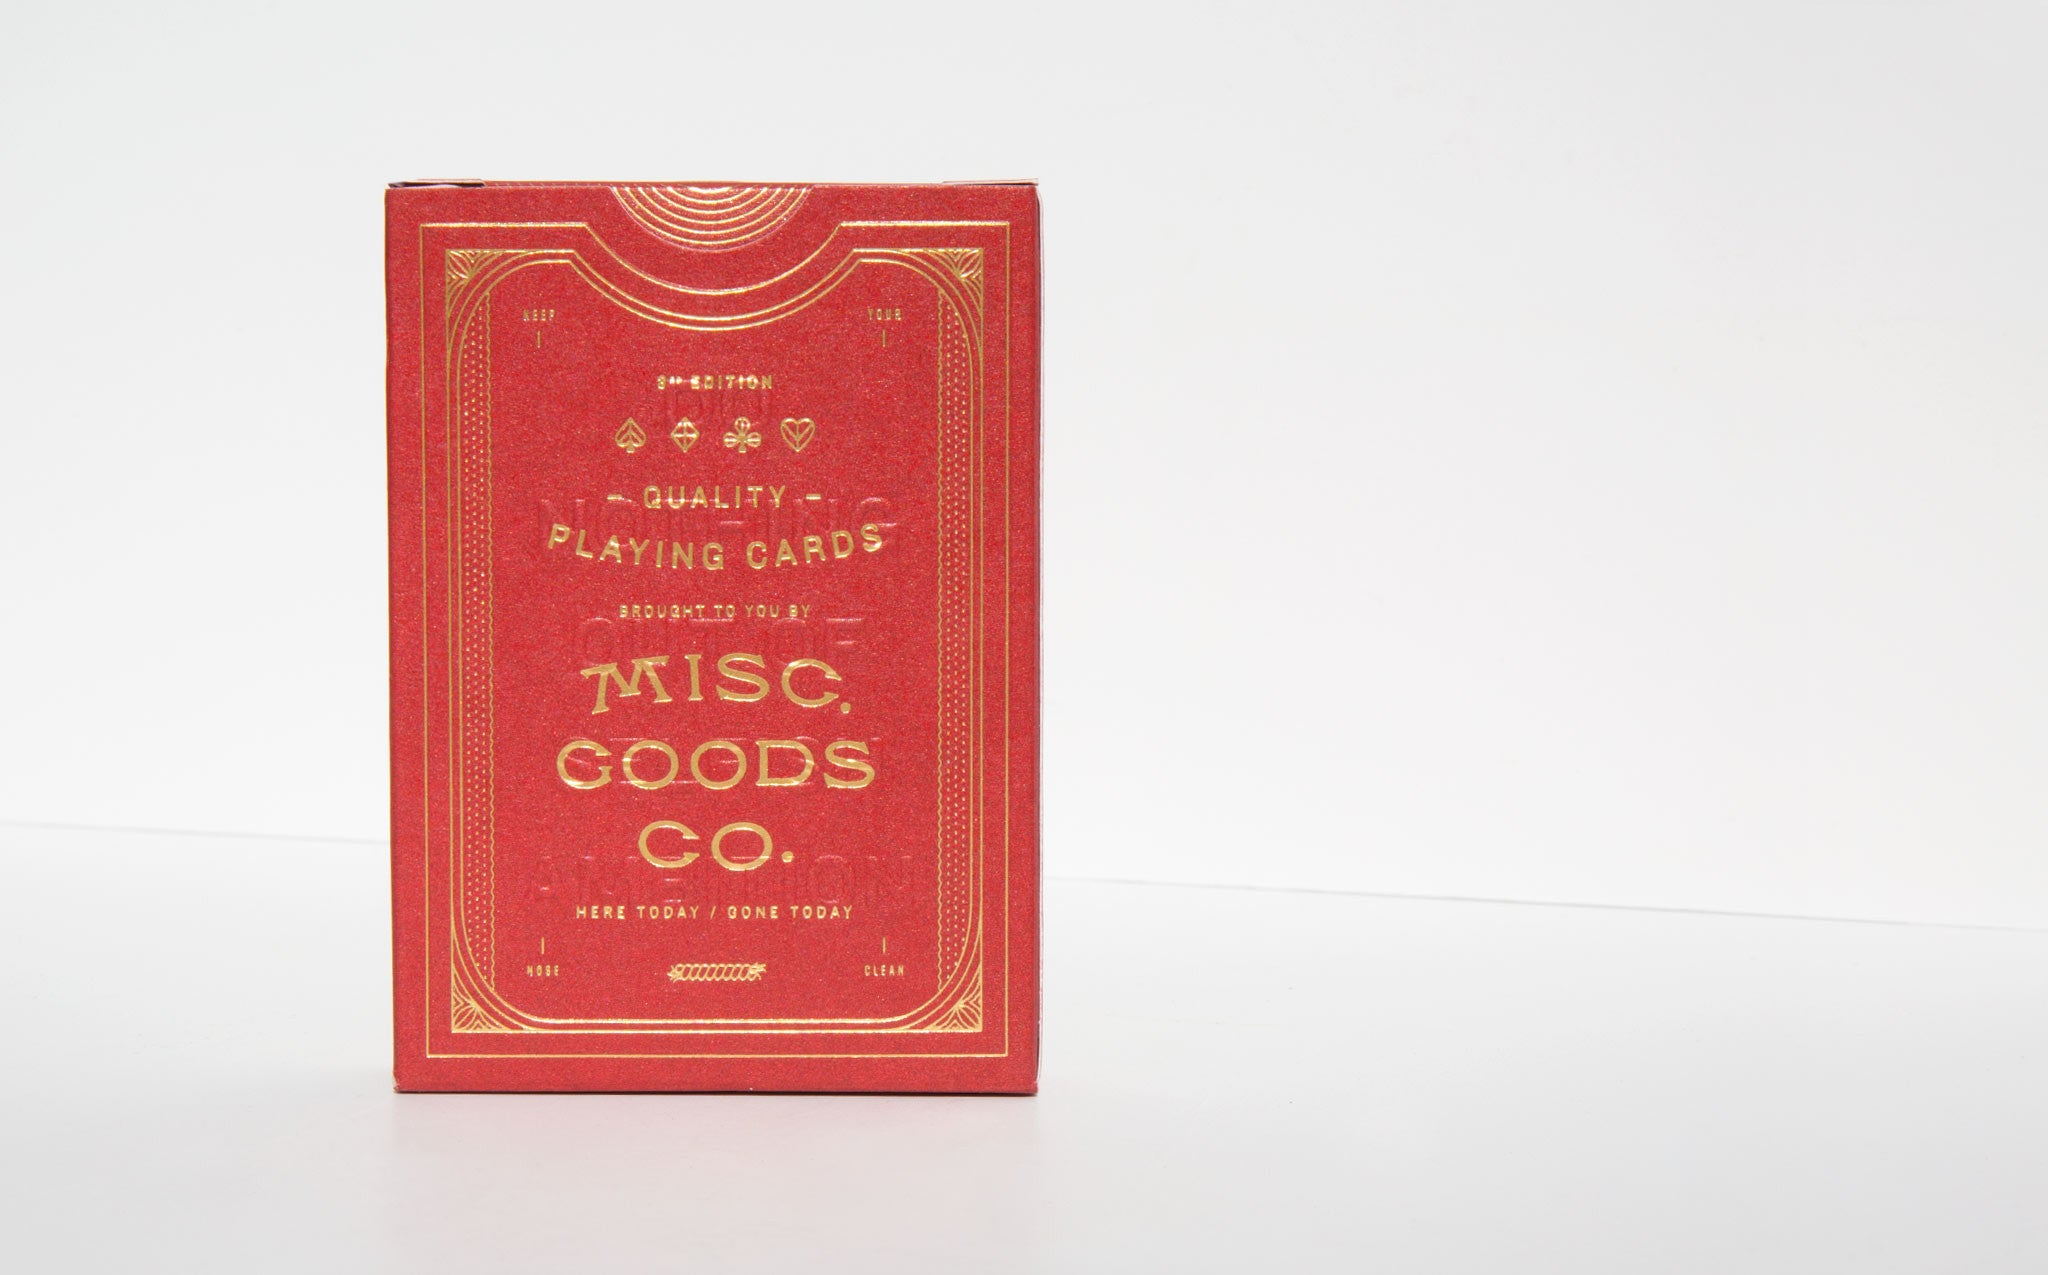 Misc Goods Co Playing Cards - Red